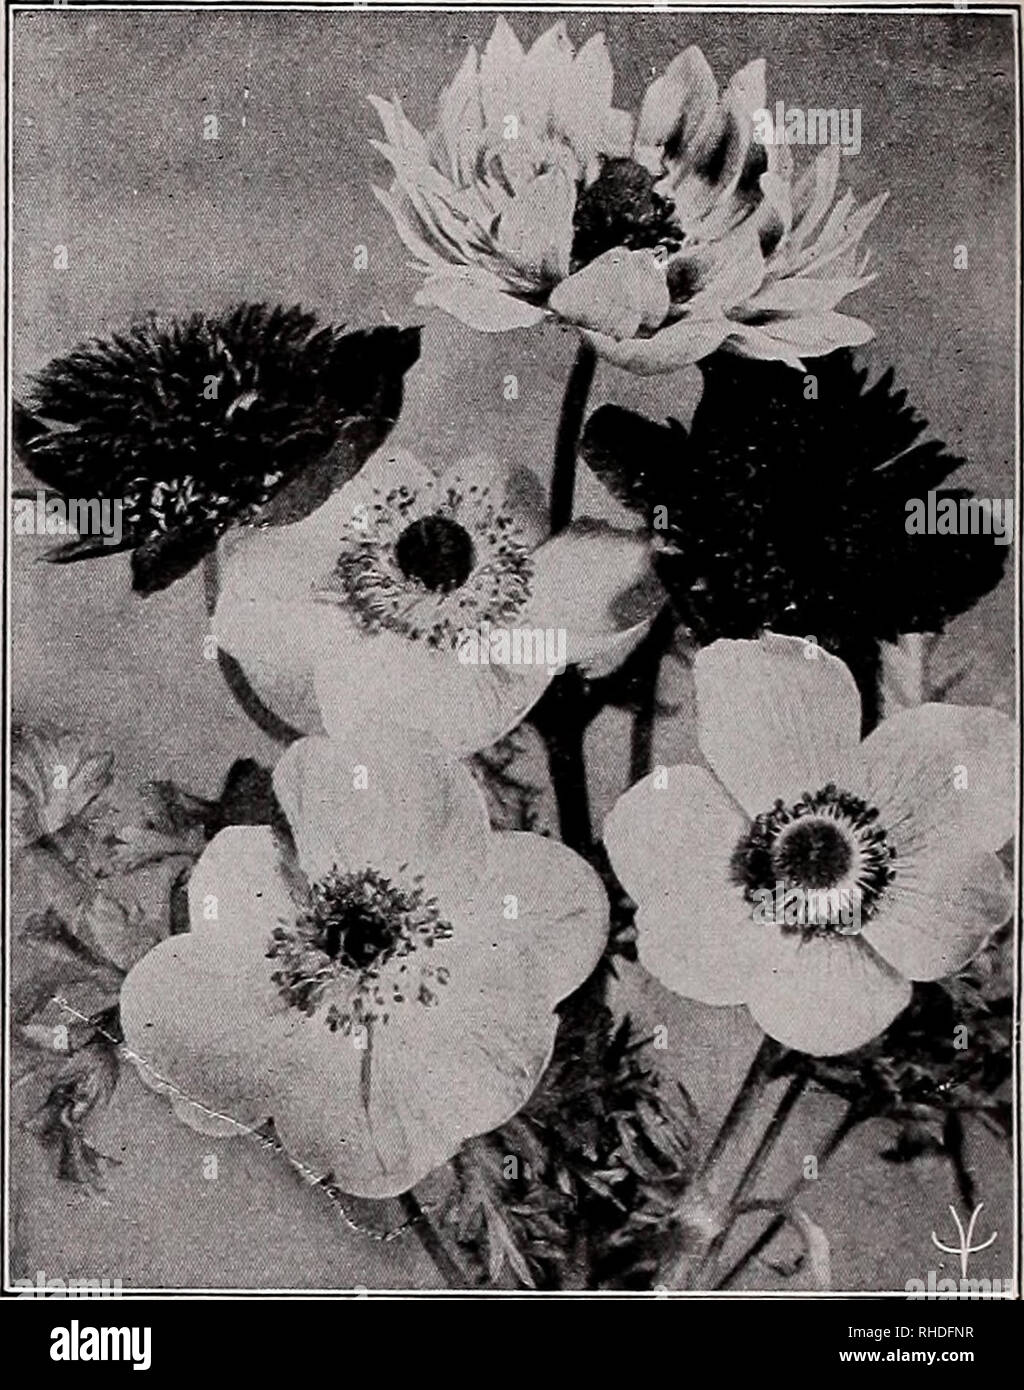 . Book for florists. Flowers Seeds Catalogs; Bulbs (Plants) Seedlings Catalogs; Vegetables Seeds Catalogs; Trees Seeds Catalogs; Horticulture Equipment and supplies Catalogs. 4 VAUGHAN'S SEED STORE, CHICAGO AND NEW YORK, BOOK FOR FLORISTS Perennial Novelties and Specialties ANEMONE Coronaria Creagh Castle Strain. Of Irish origin. It belongs to the St. Brigid variety which is well known. The flowers are extremely large and the range color exceptional. Trade pkt., $1.00. Coronaria The Governor. Double bright scarlet flowers. Trade pkt., 50c; oz., 85c; oz., $3.00. AQUILEGIA Dobbie's Imperial Hybr - Stock Image